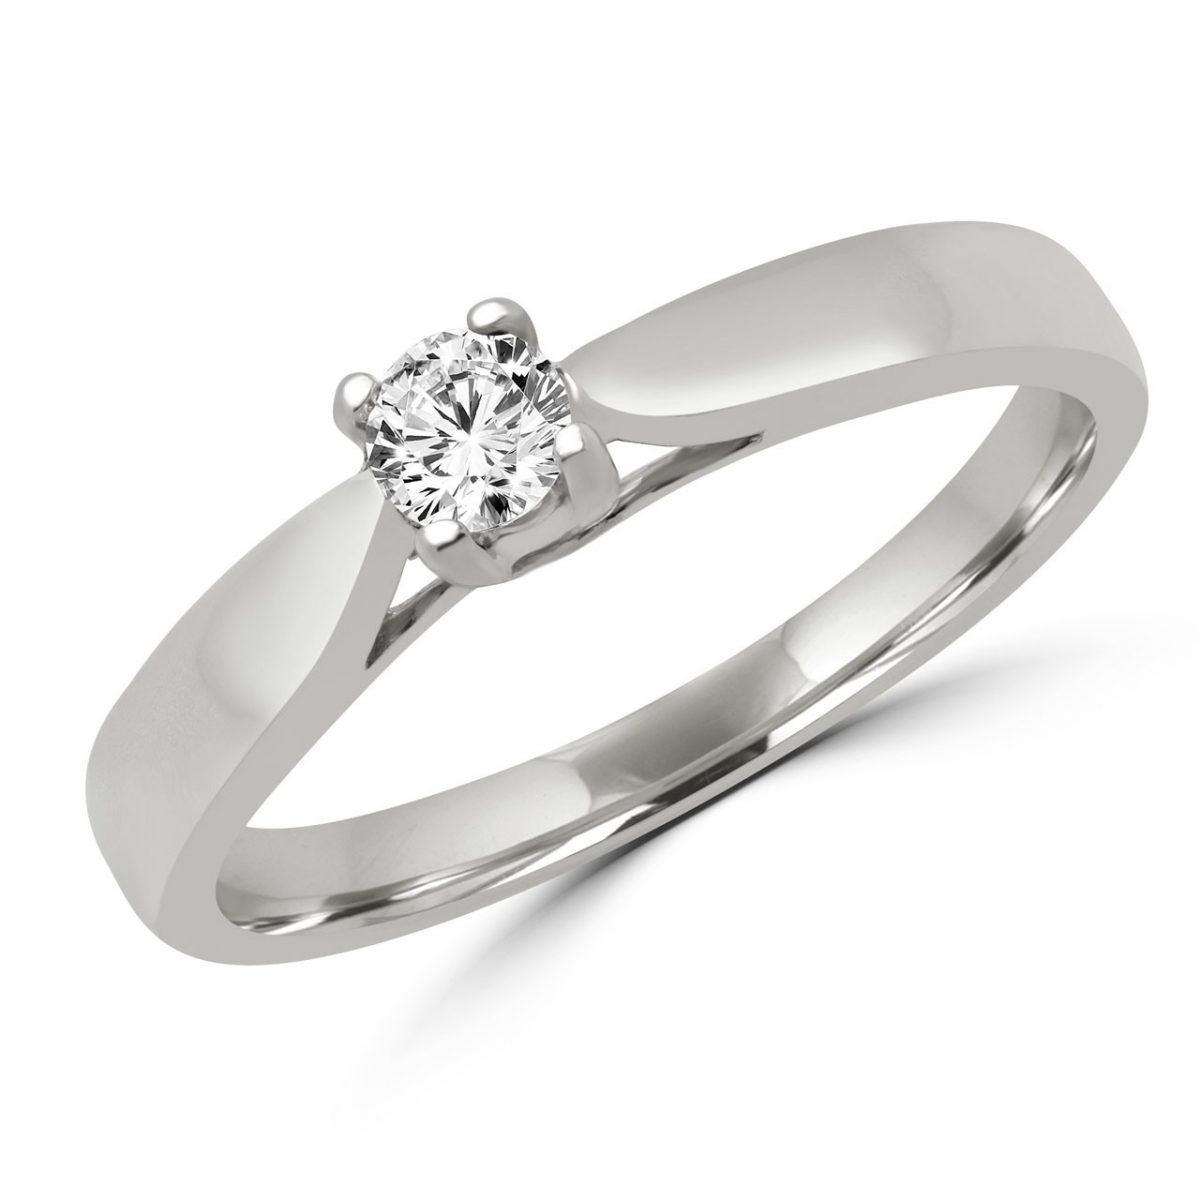 Lovely Solitaire Engagement Ring In 10k White Gold